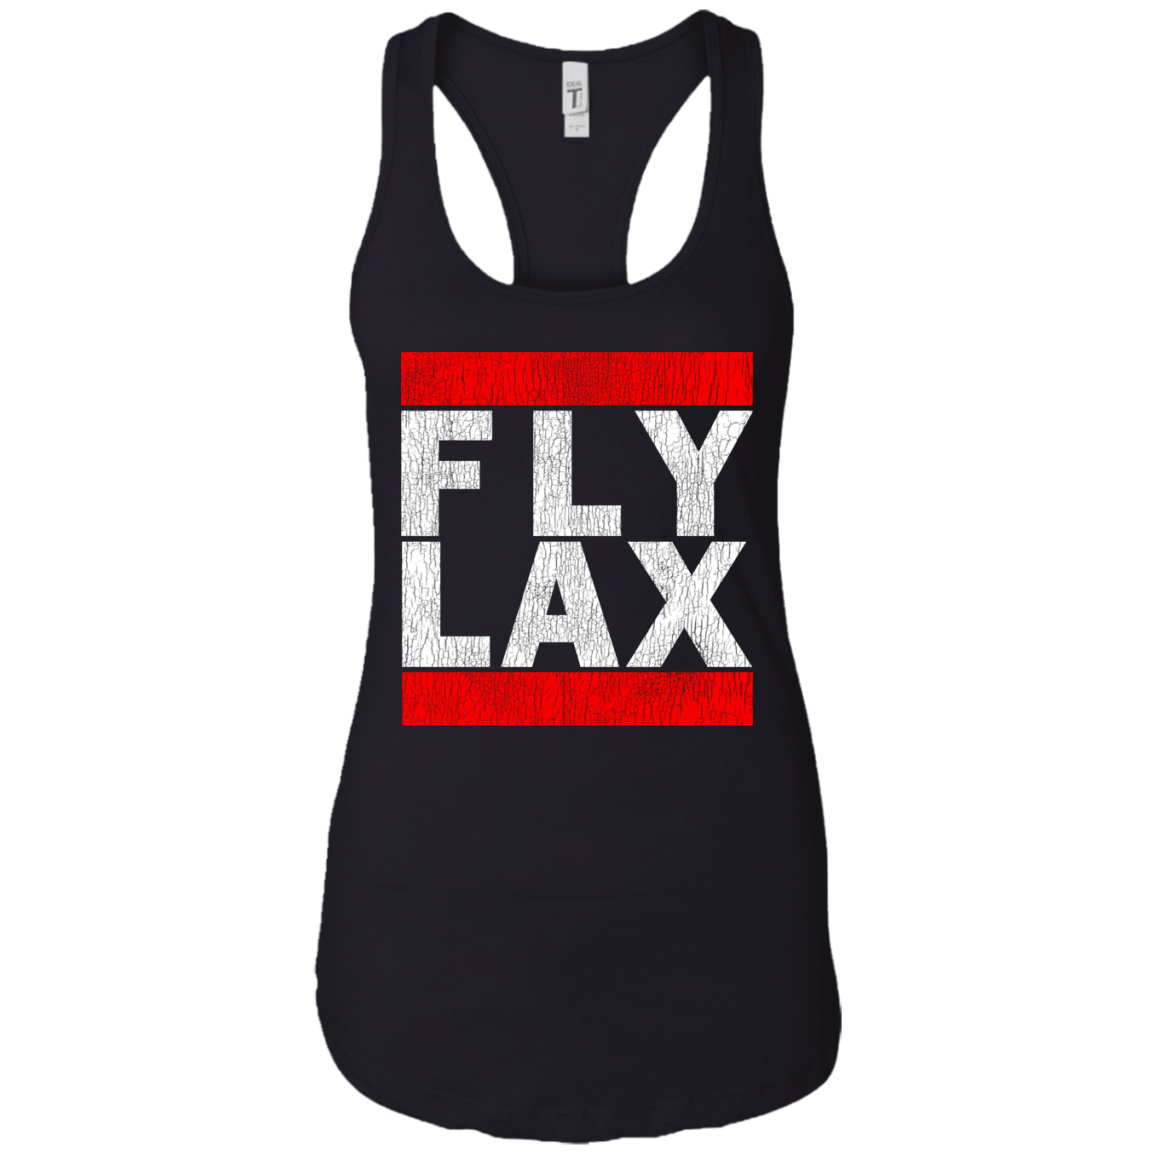 WOMEN'S FLY LAX WHITE VINTAGE PRINT SHIRTS